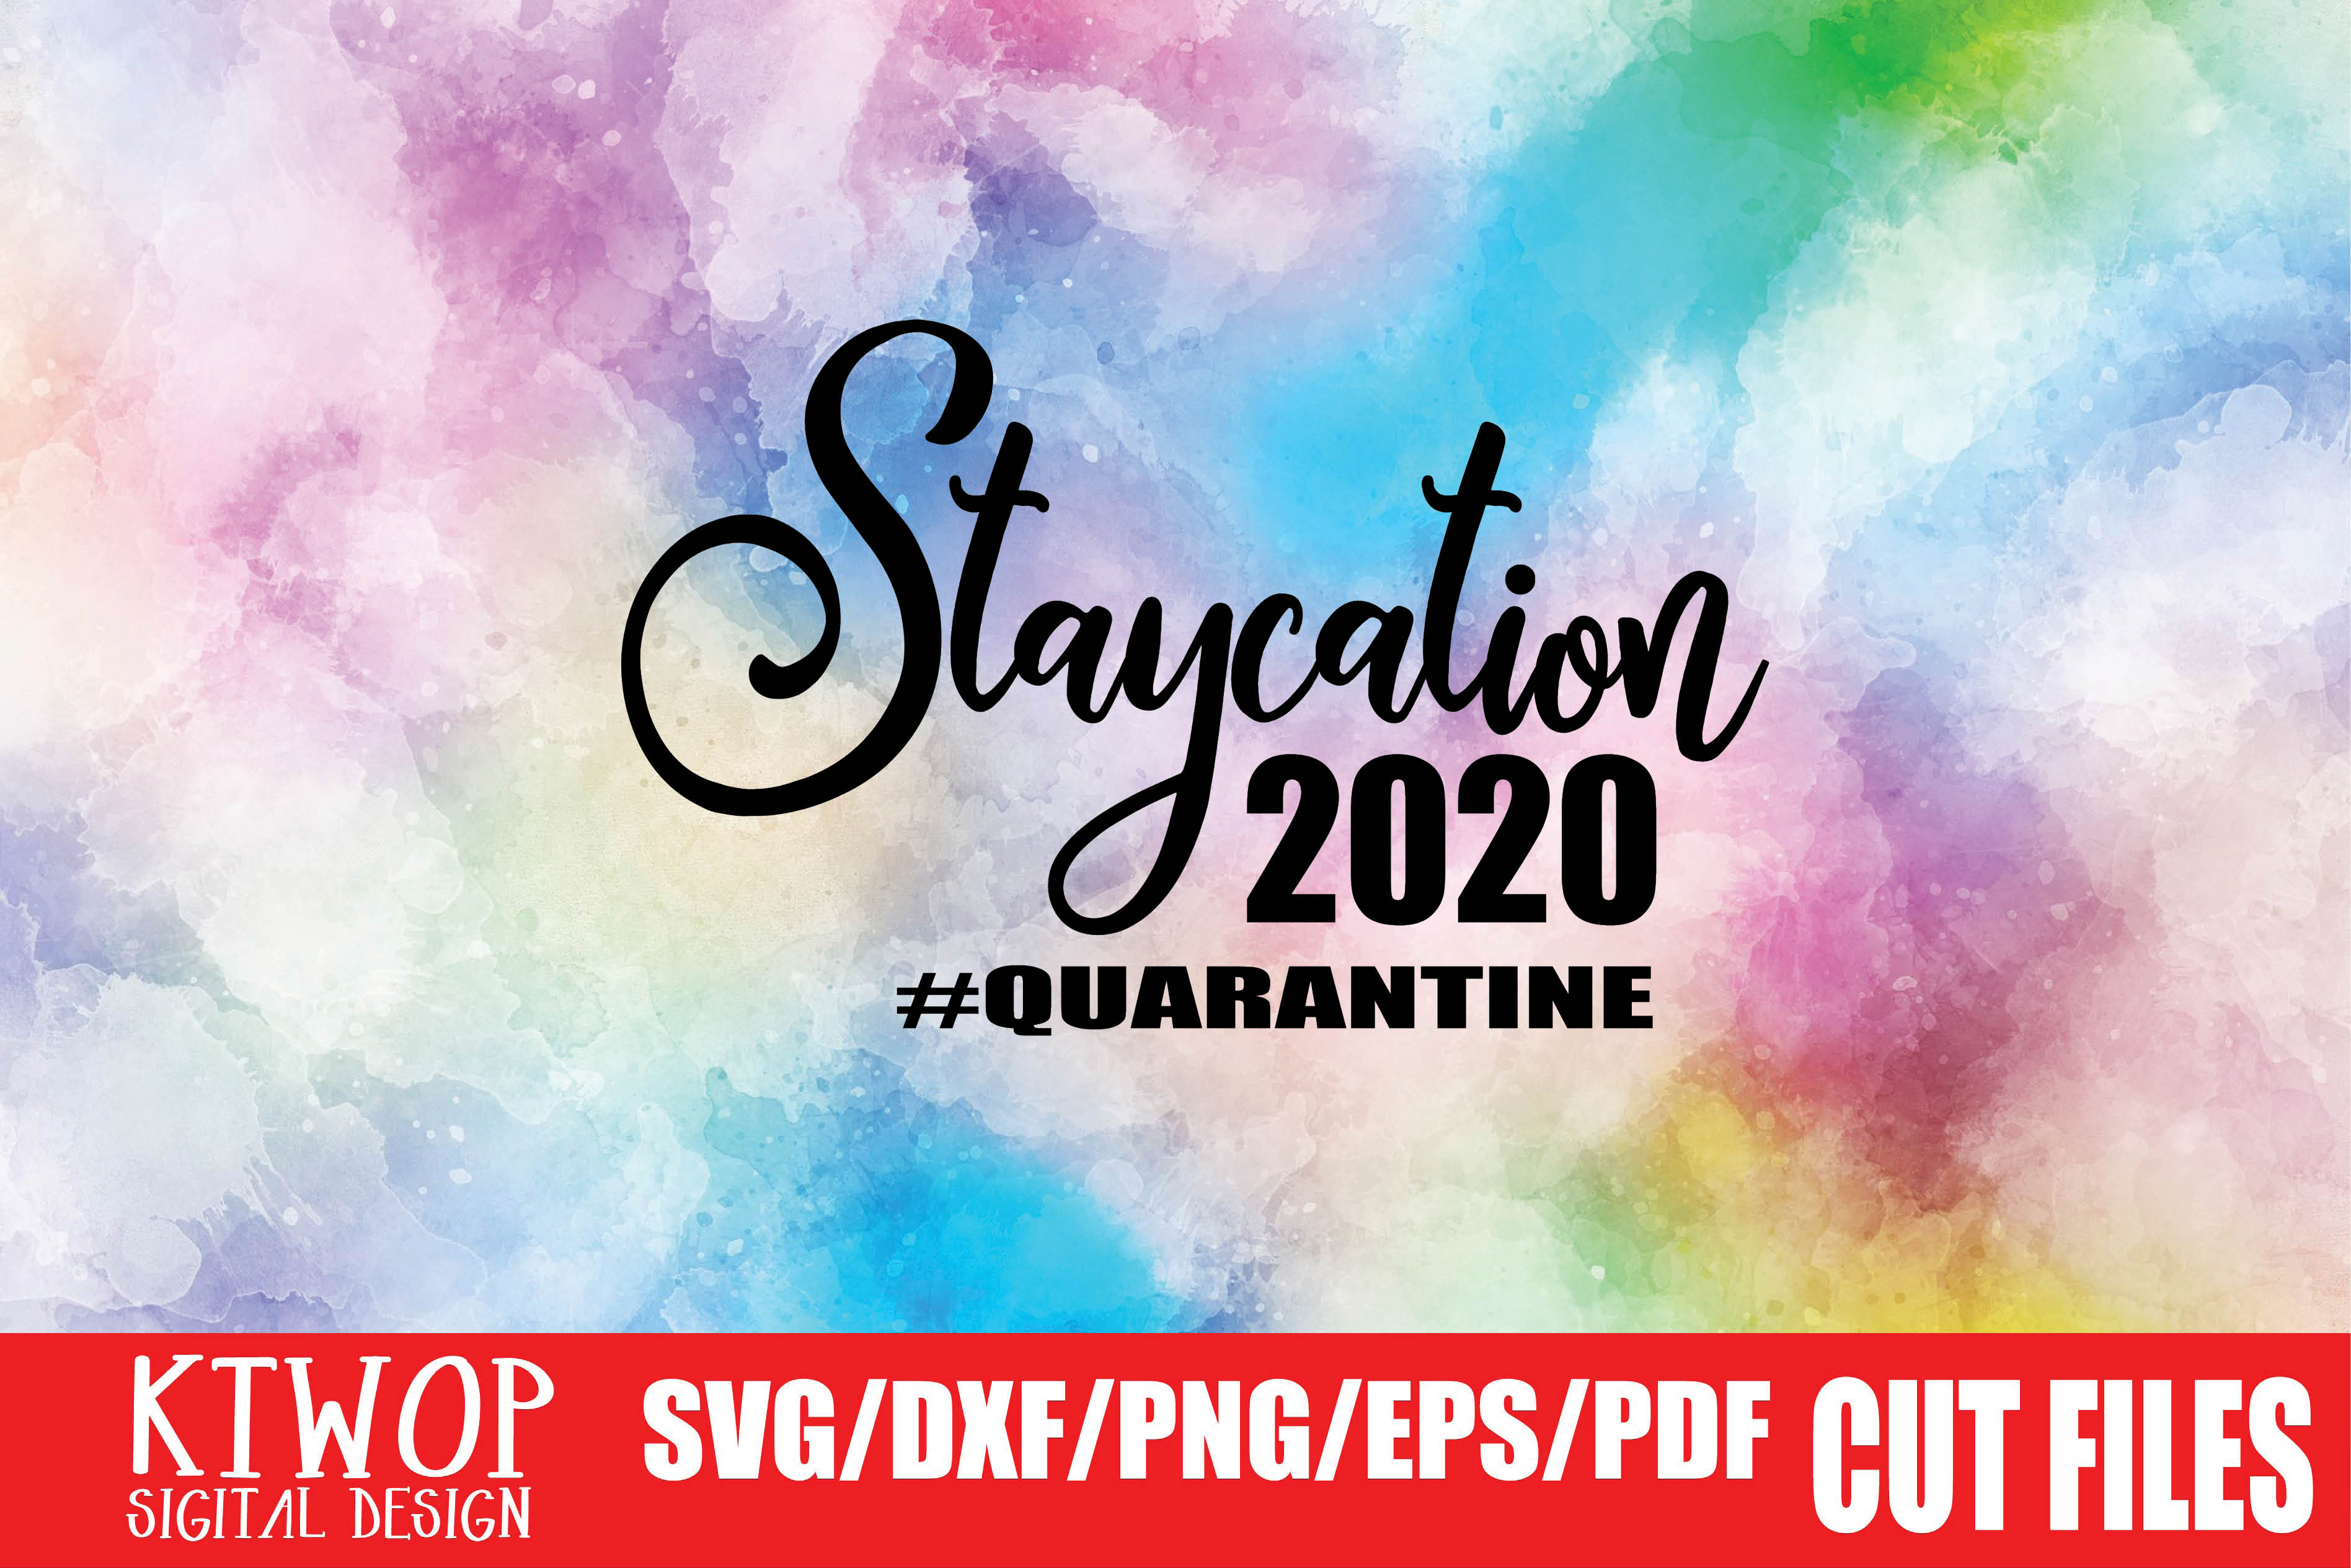 Download Free Staycation 2020 Graphic By Ktwop Creative Fabrica for Cricut Explore, Silhouette and other cutting machines.